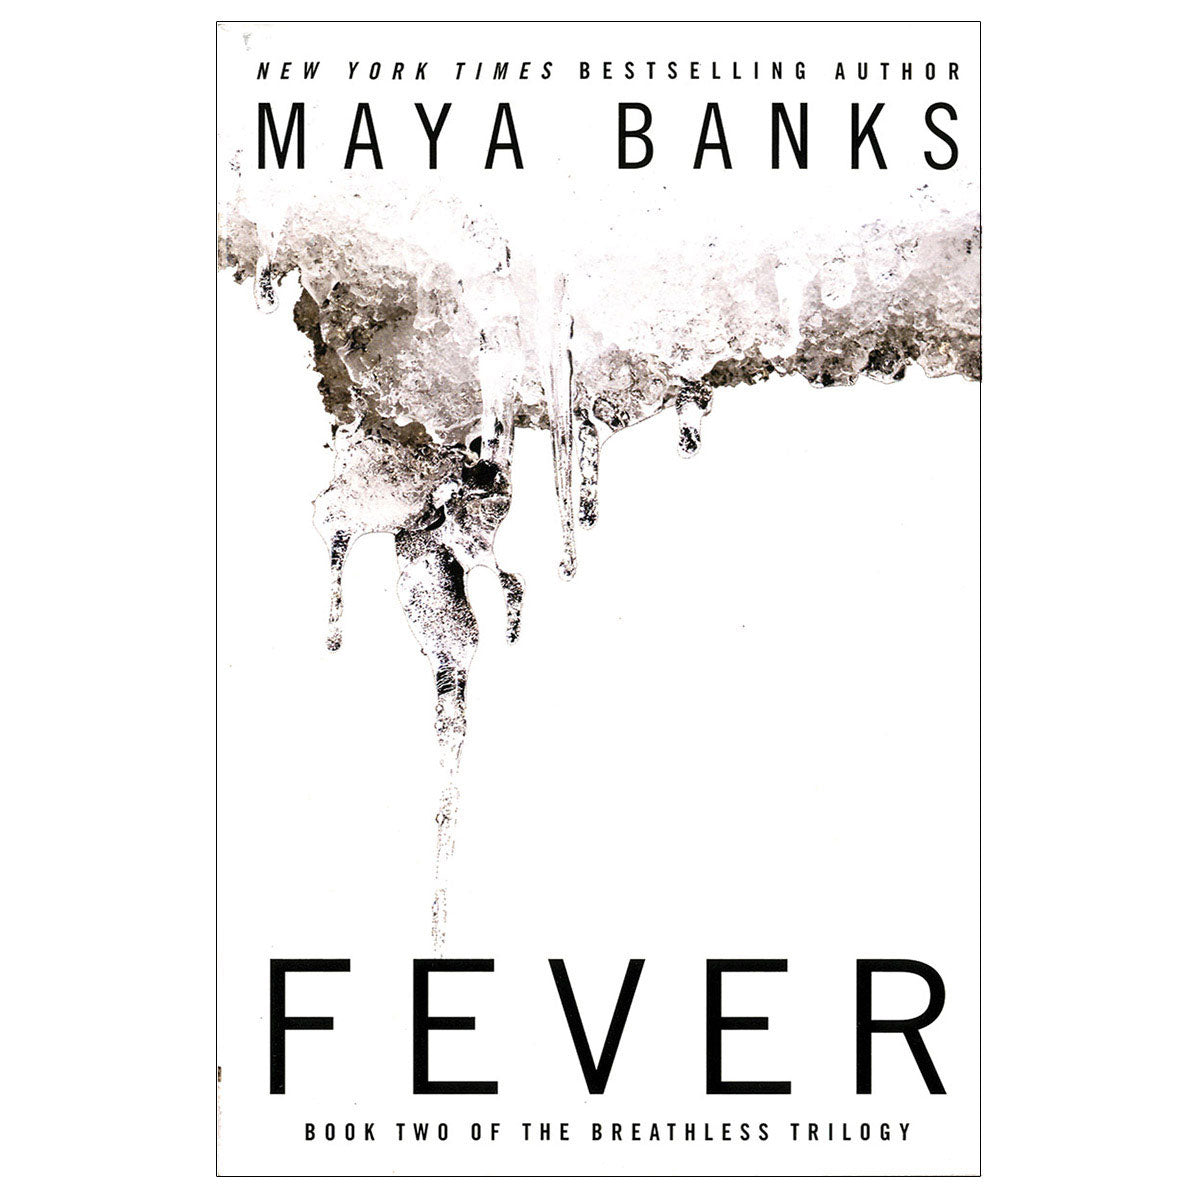 Fever by Maya Banks - Book Two of the Breathless Trilogy - Penguin